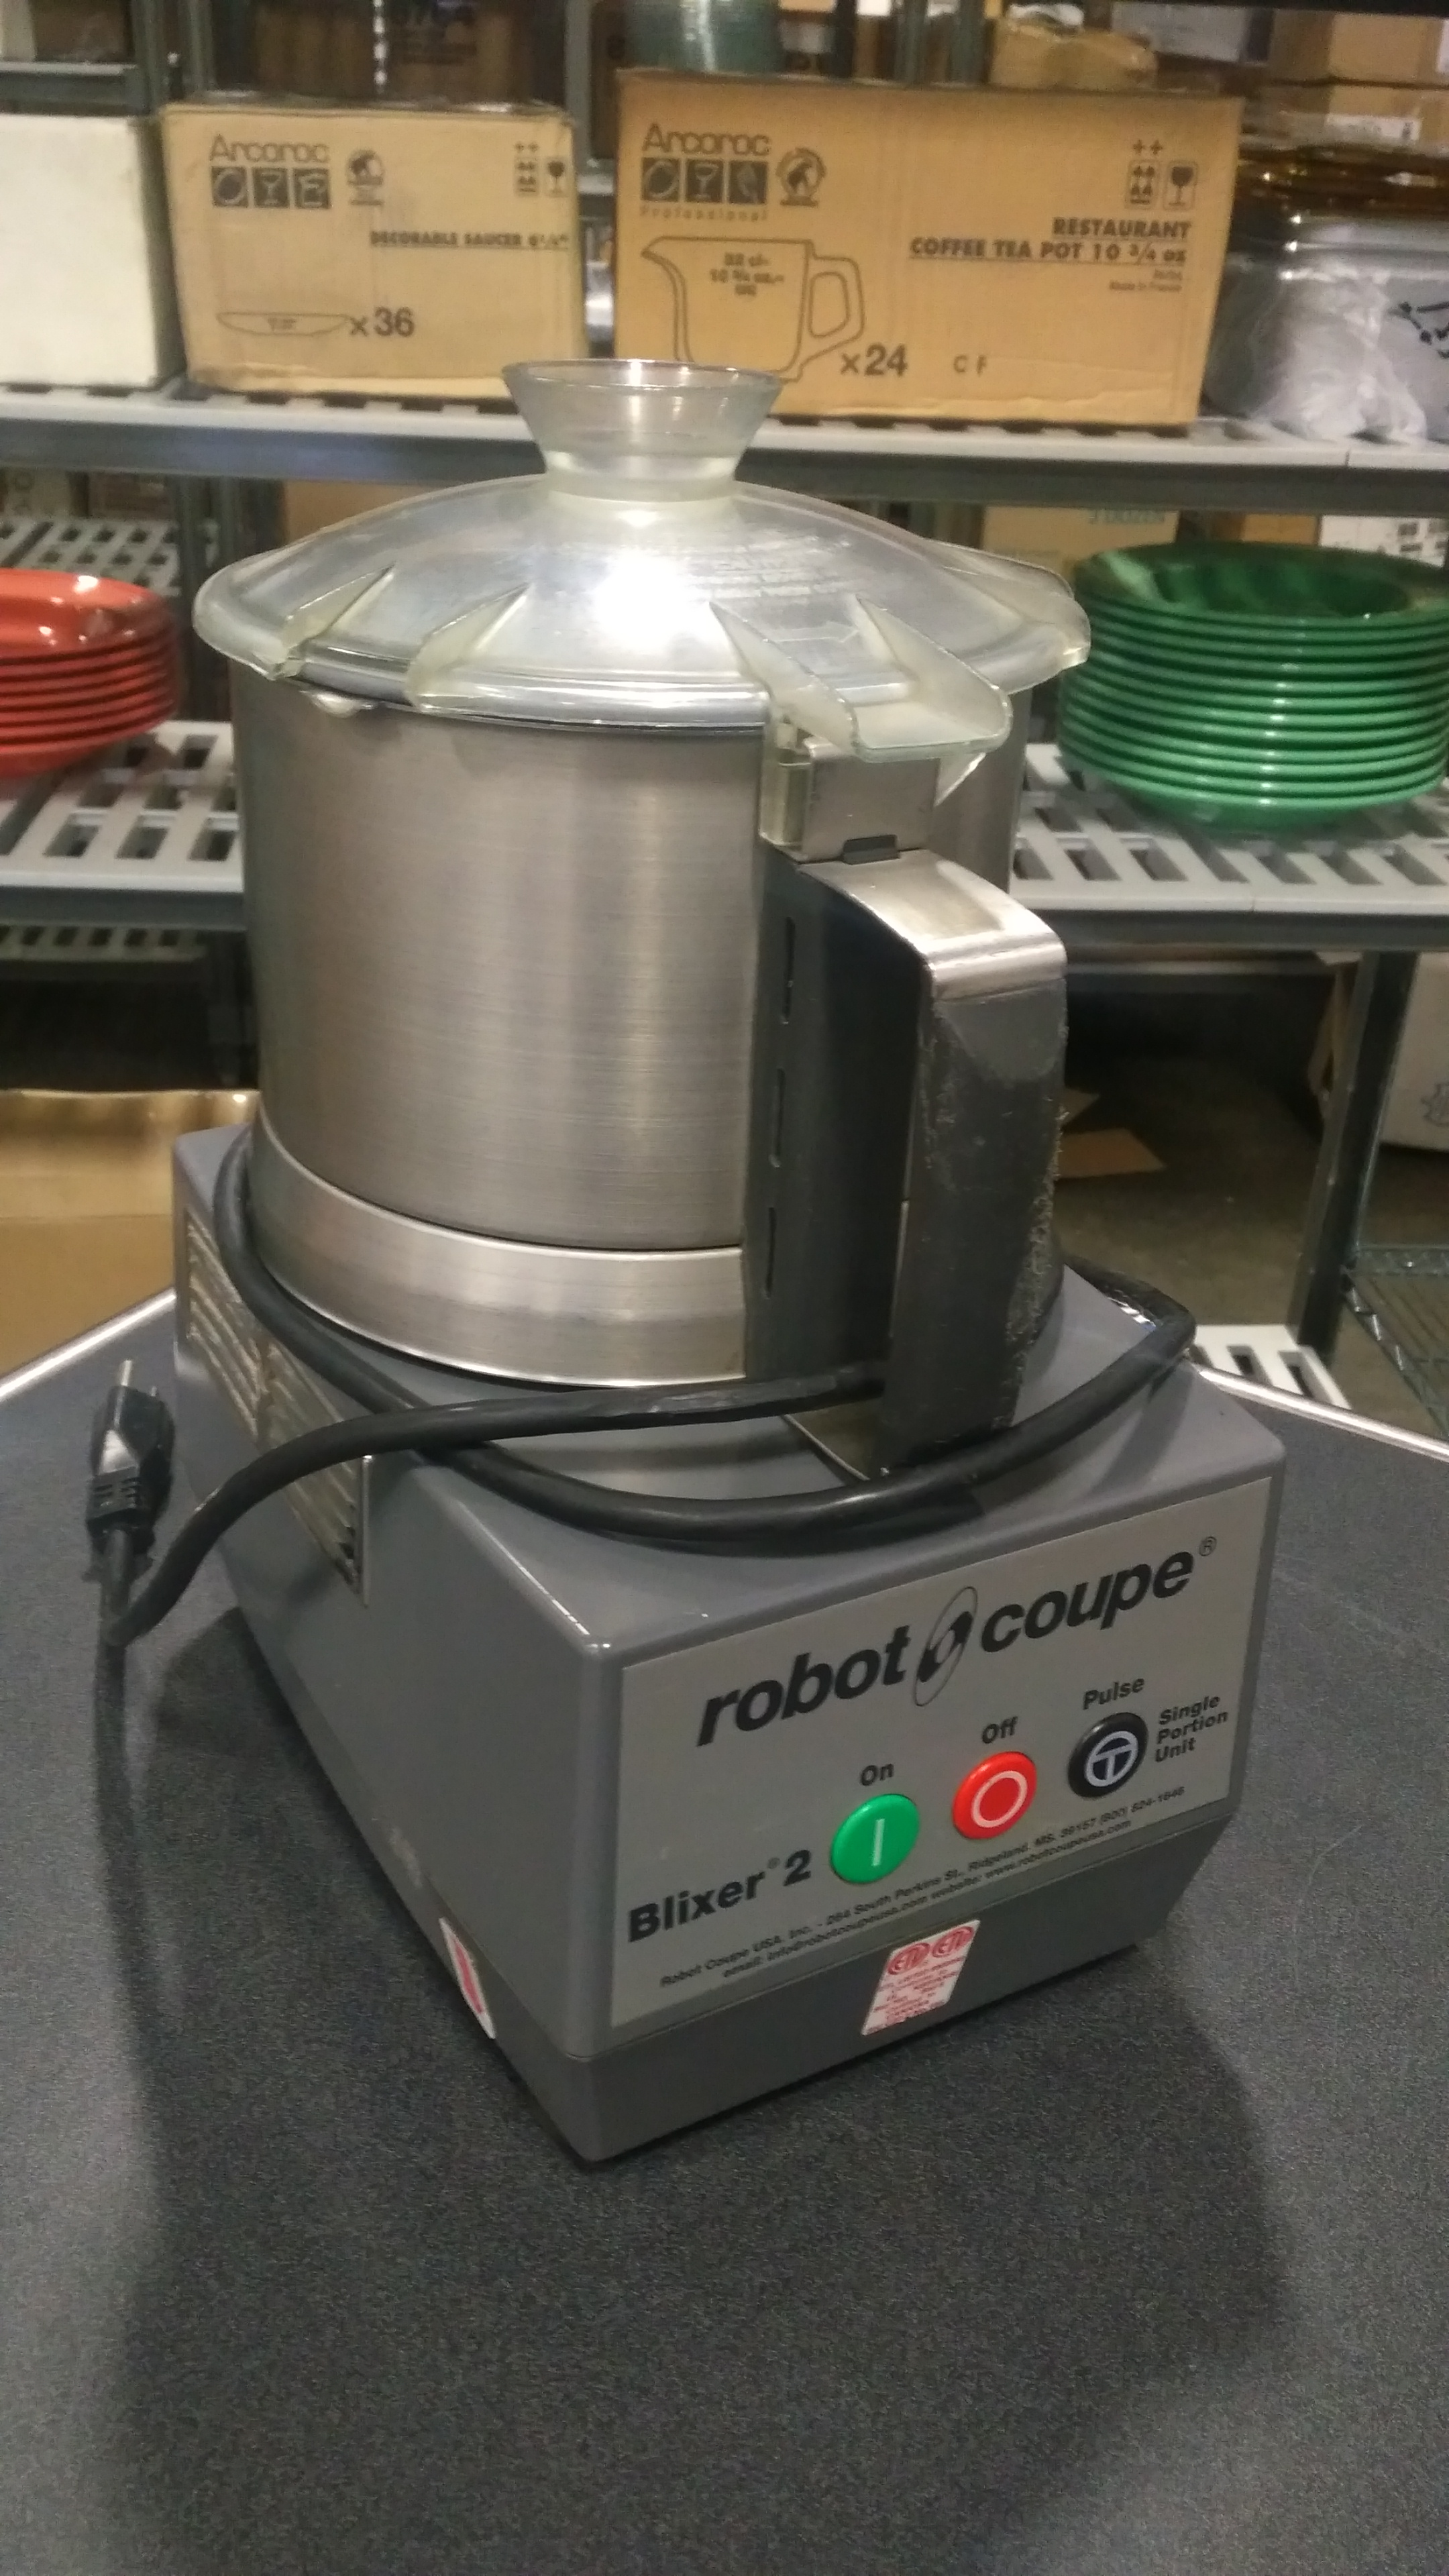 Lot 21 - Robot Coupe Blixer 2, tested/working